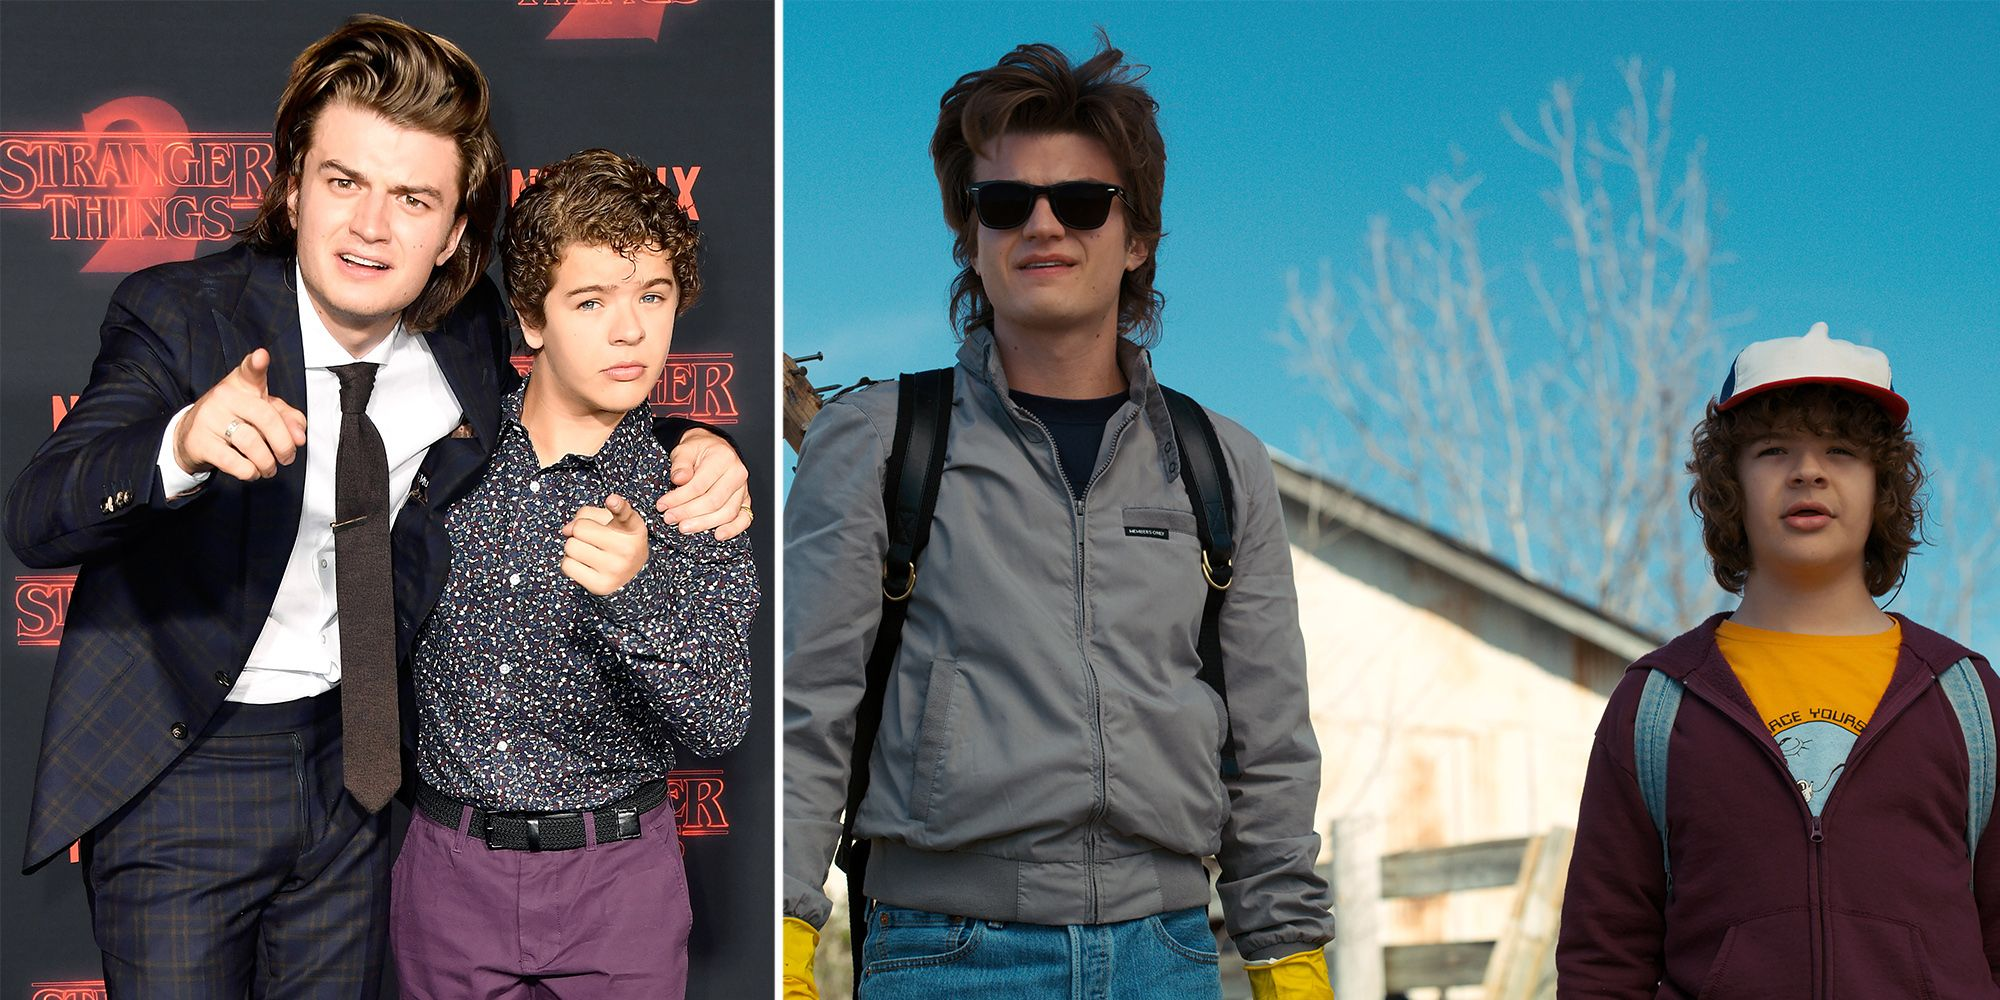 Steve And Dustin S Stranger Things Friendship Wasn T Planned Joe Keery And Gaten Matarazzo Real Like Friends Joseph david keery (born april 24, 1992) is an american actor and musician. steve and dustin s stranger things